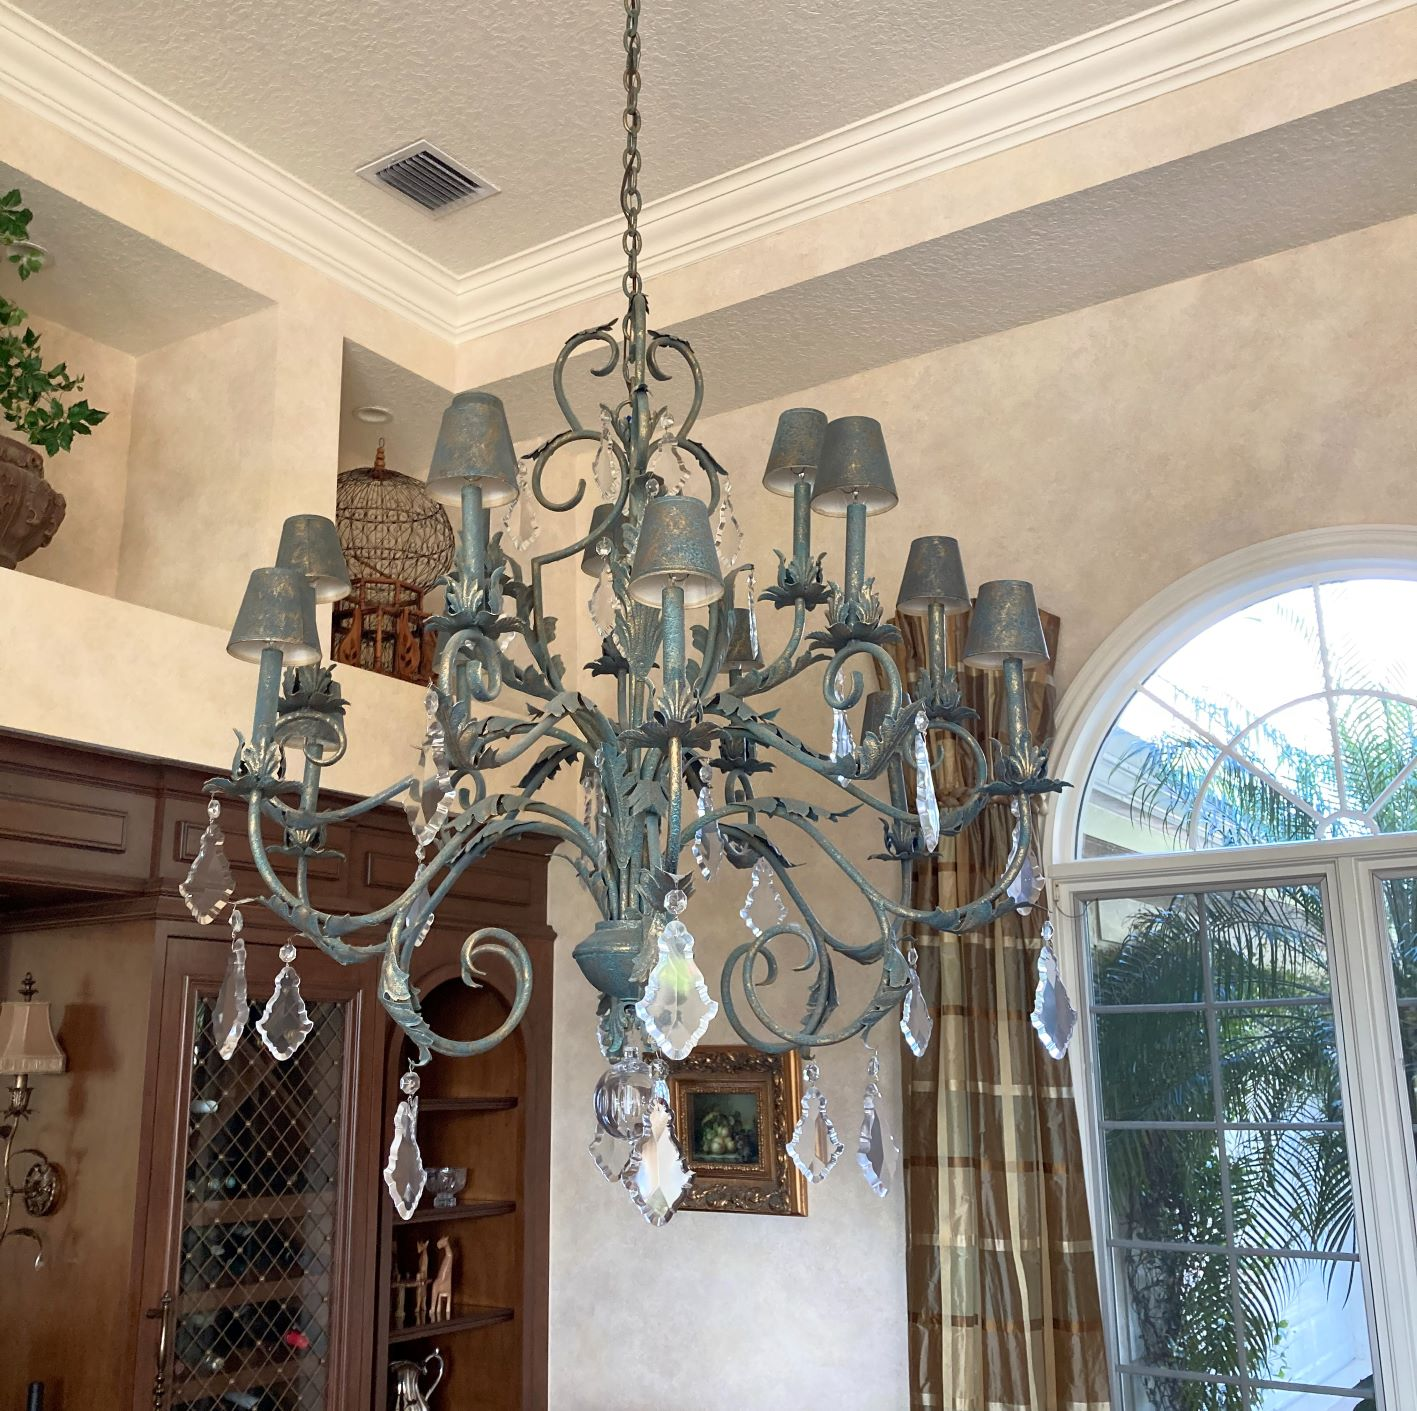 Painting a Chandelier While it is Still Hanging on the Ceiling